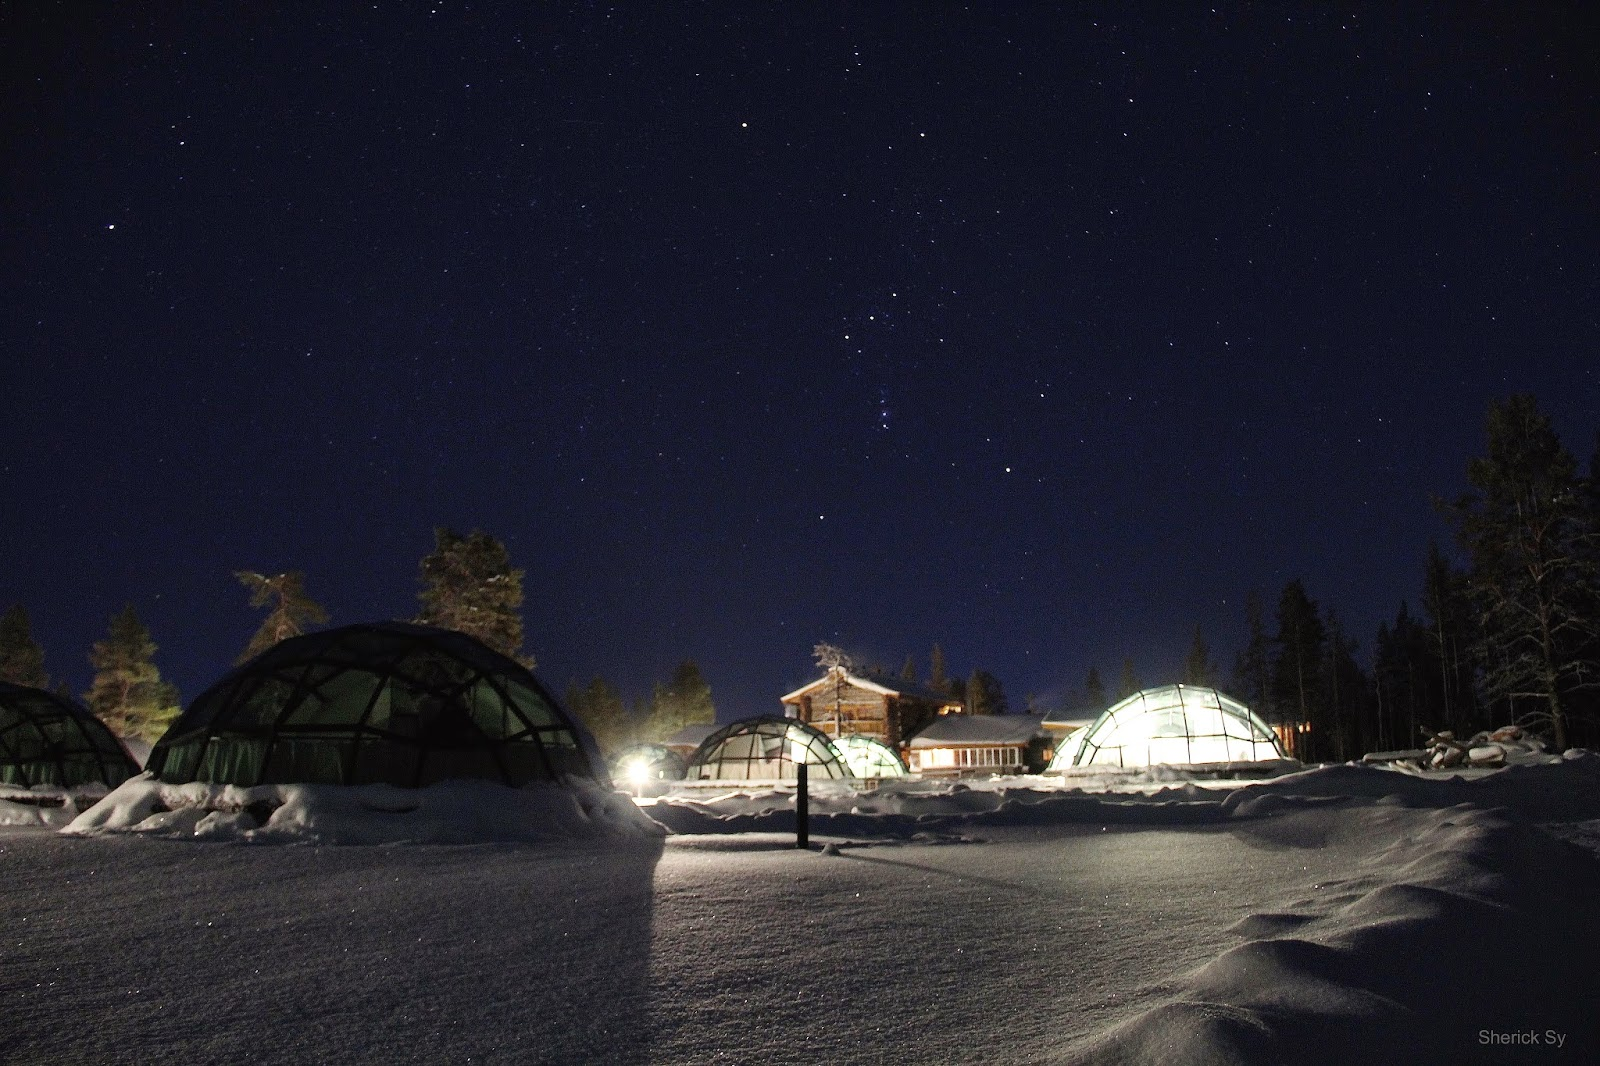 Night, Glass Igloo, Kakslauttanen, Finland